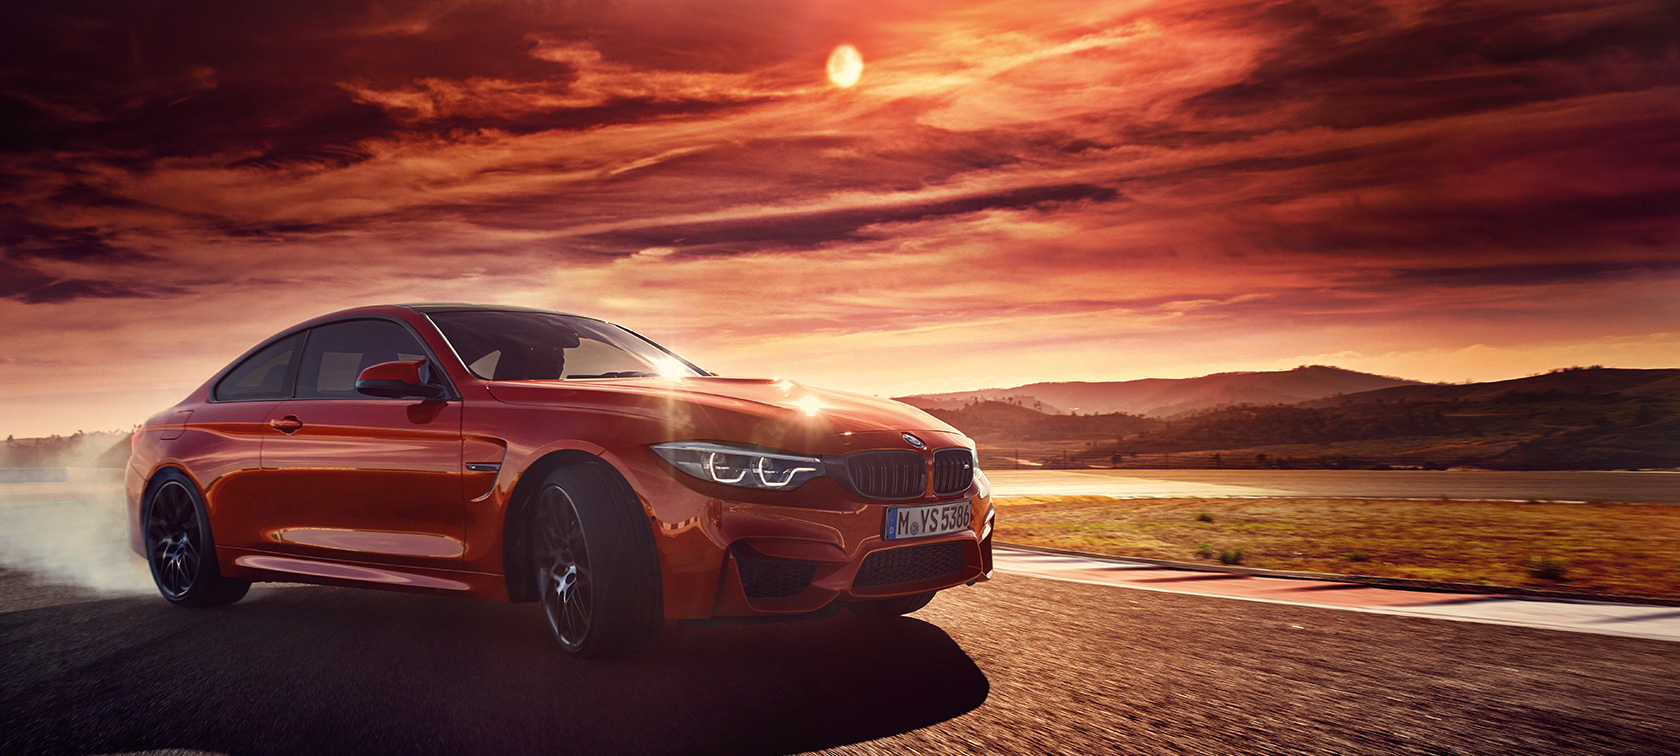 BMW M4 Coupe >> The M4 Bmw M4 Coupe Bmw Fi